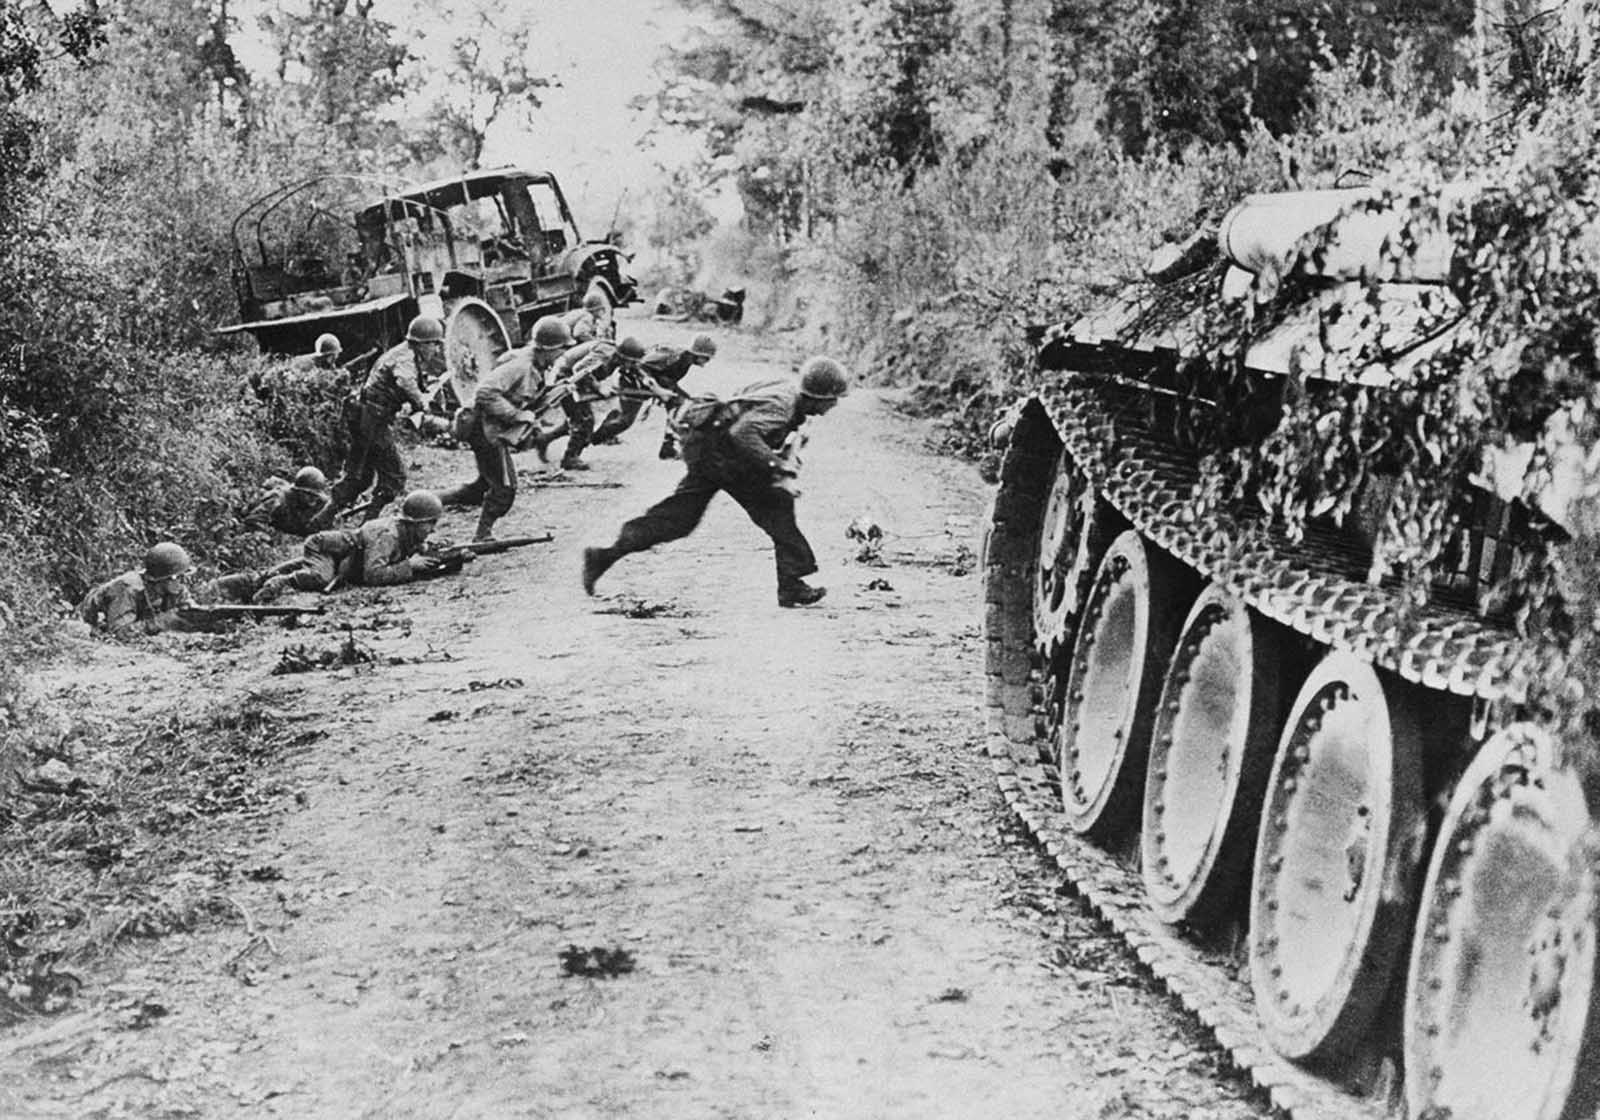 American soldiers race across a dirt road, which is under enemy fire, near St. Lo, in Normandy, France, on July 25, 1944. Others crouch in the ditch before making the crossing.